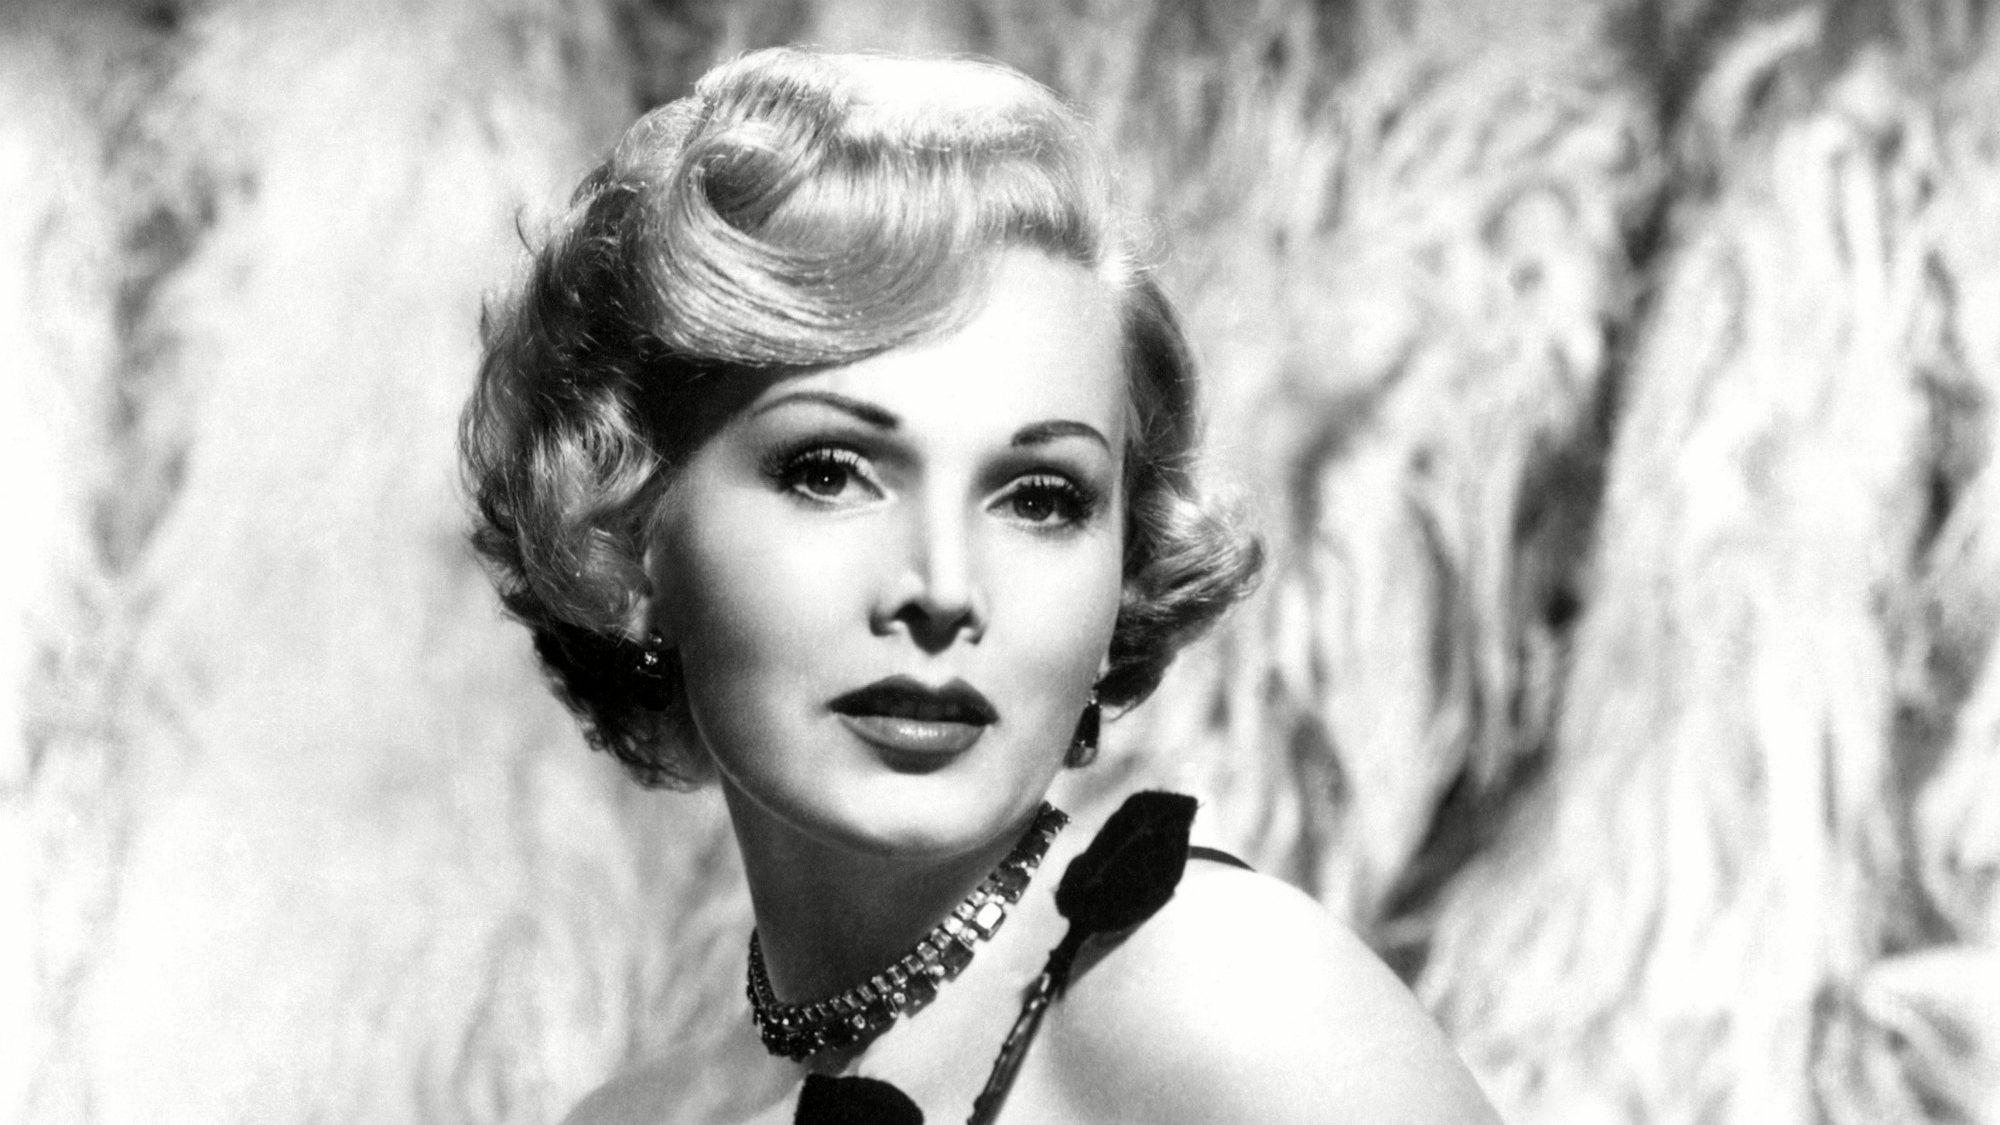 Zsa Zsa Gabor Quotes 18 Of Zsa Zsa Gabor's Most Iconic Quotesmarie Claire